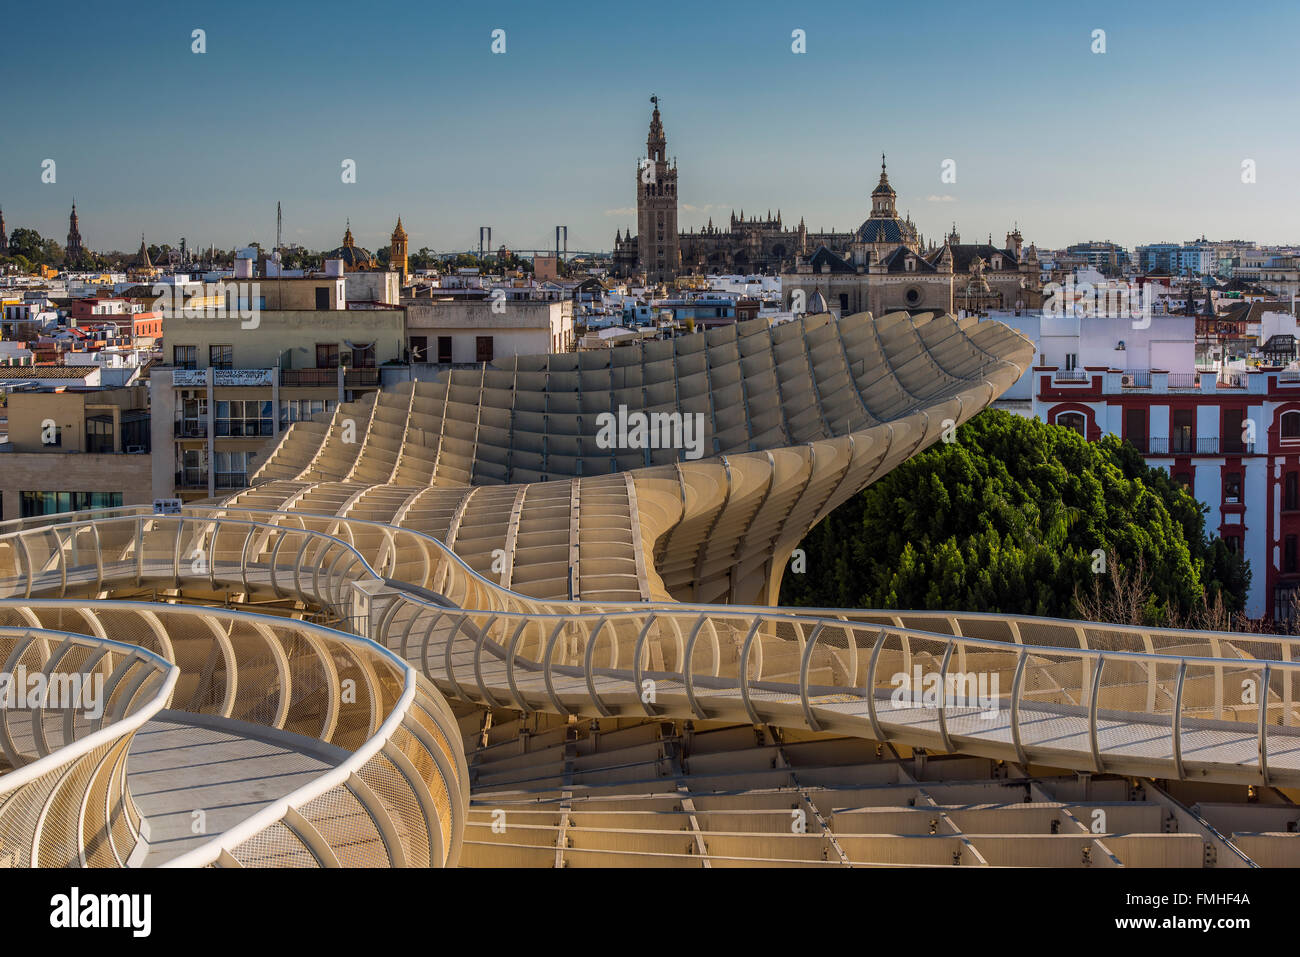 City skyline from the Metropol Parasol, Seville, Andalusia, Spain - Stock Image